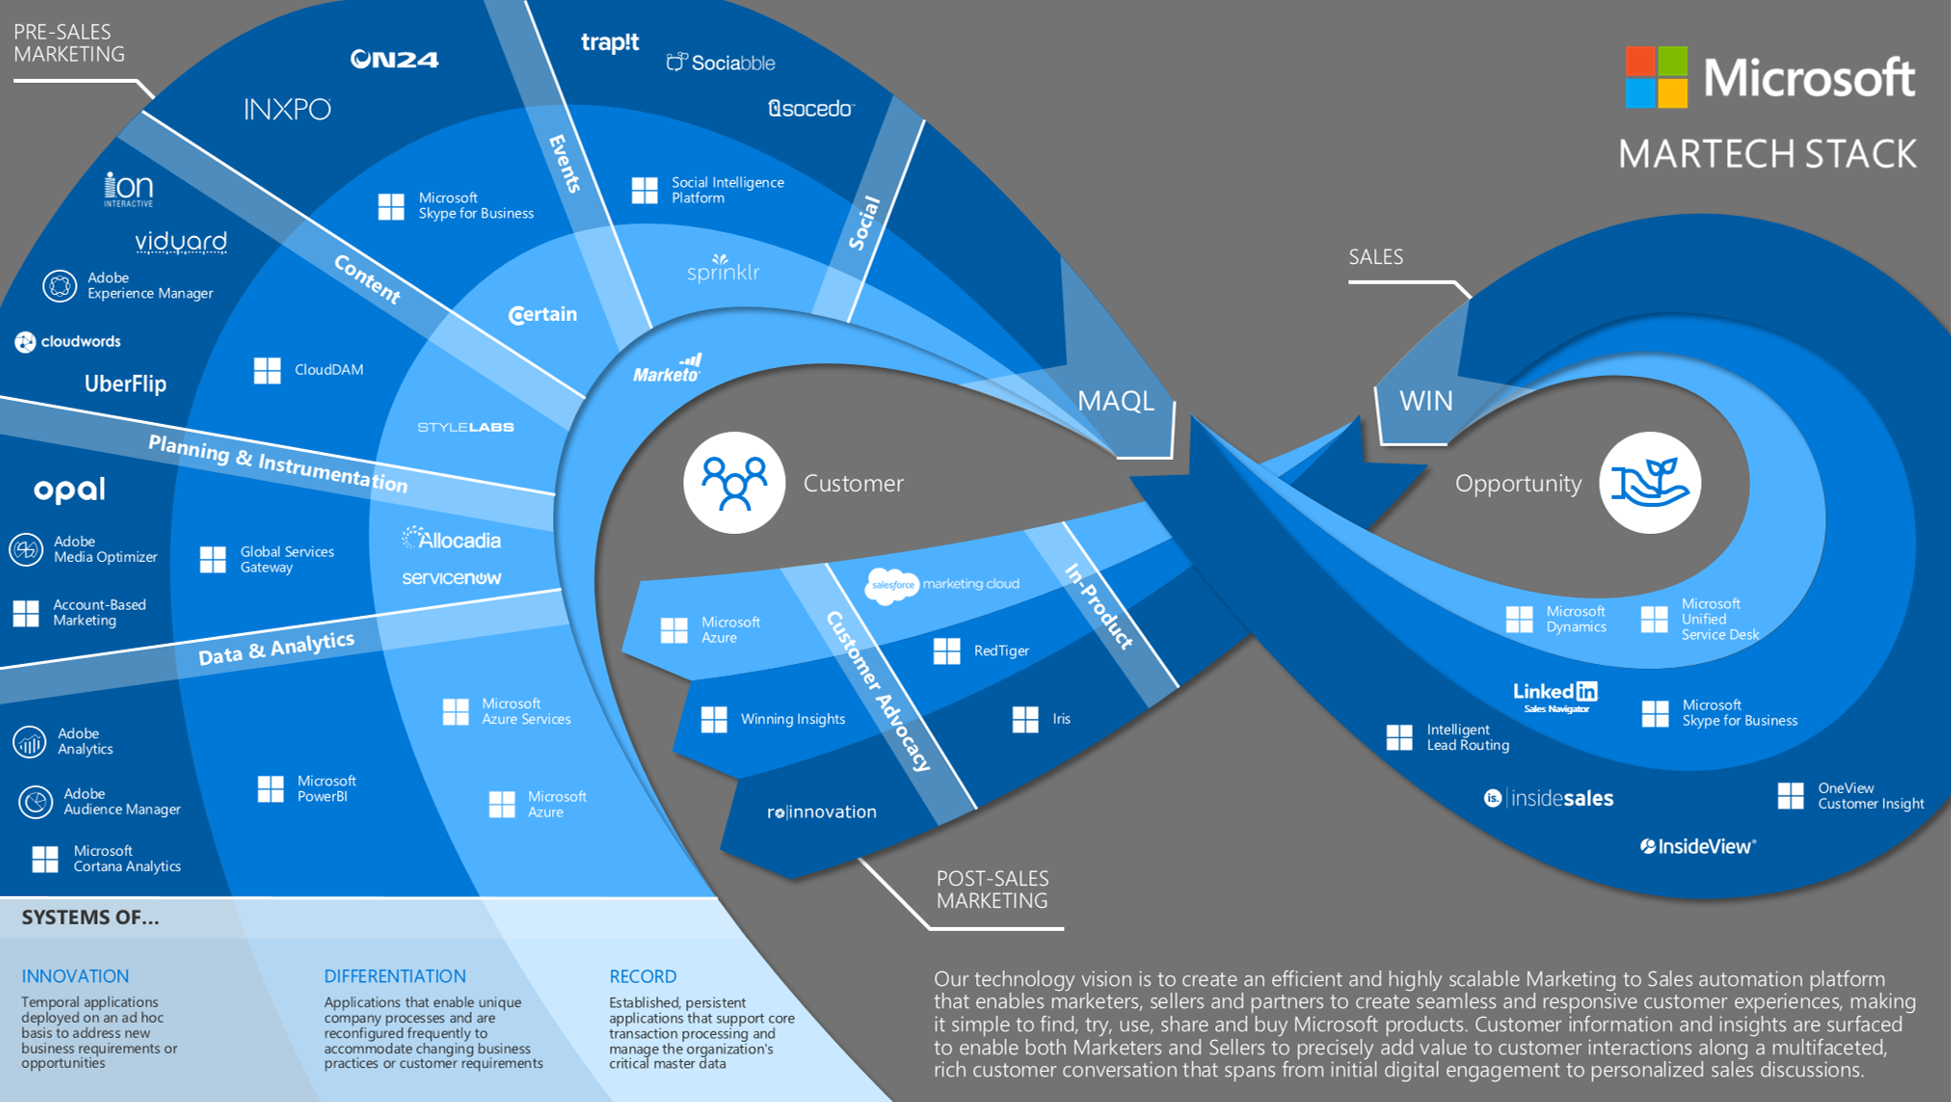 """The Top Insights Gained from Microsoft's """"Stack Marketing"""" System"""